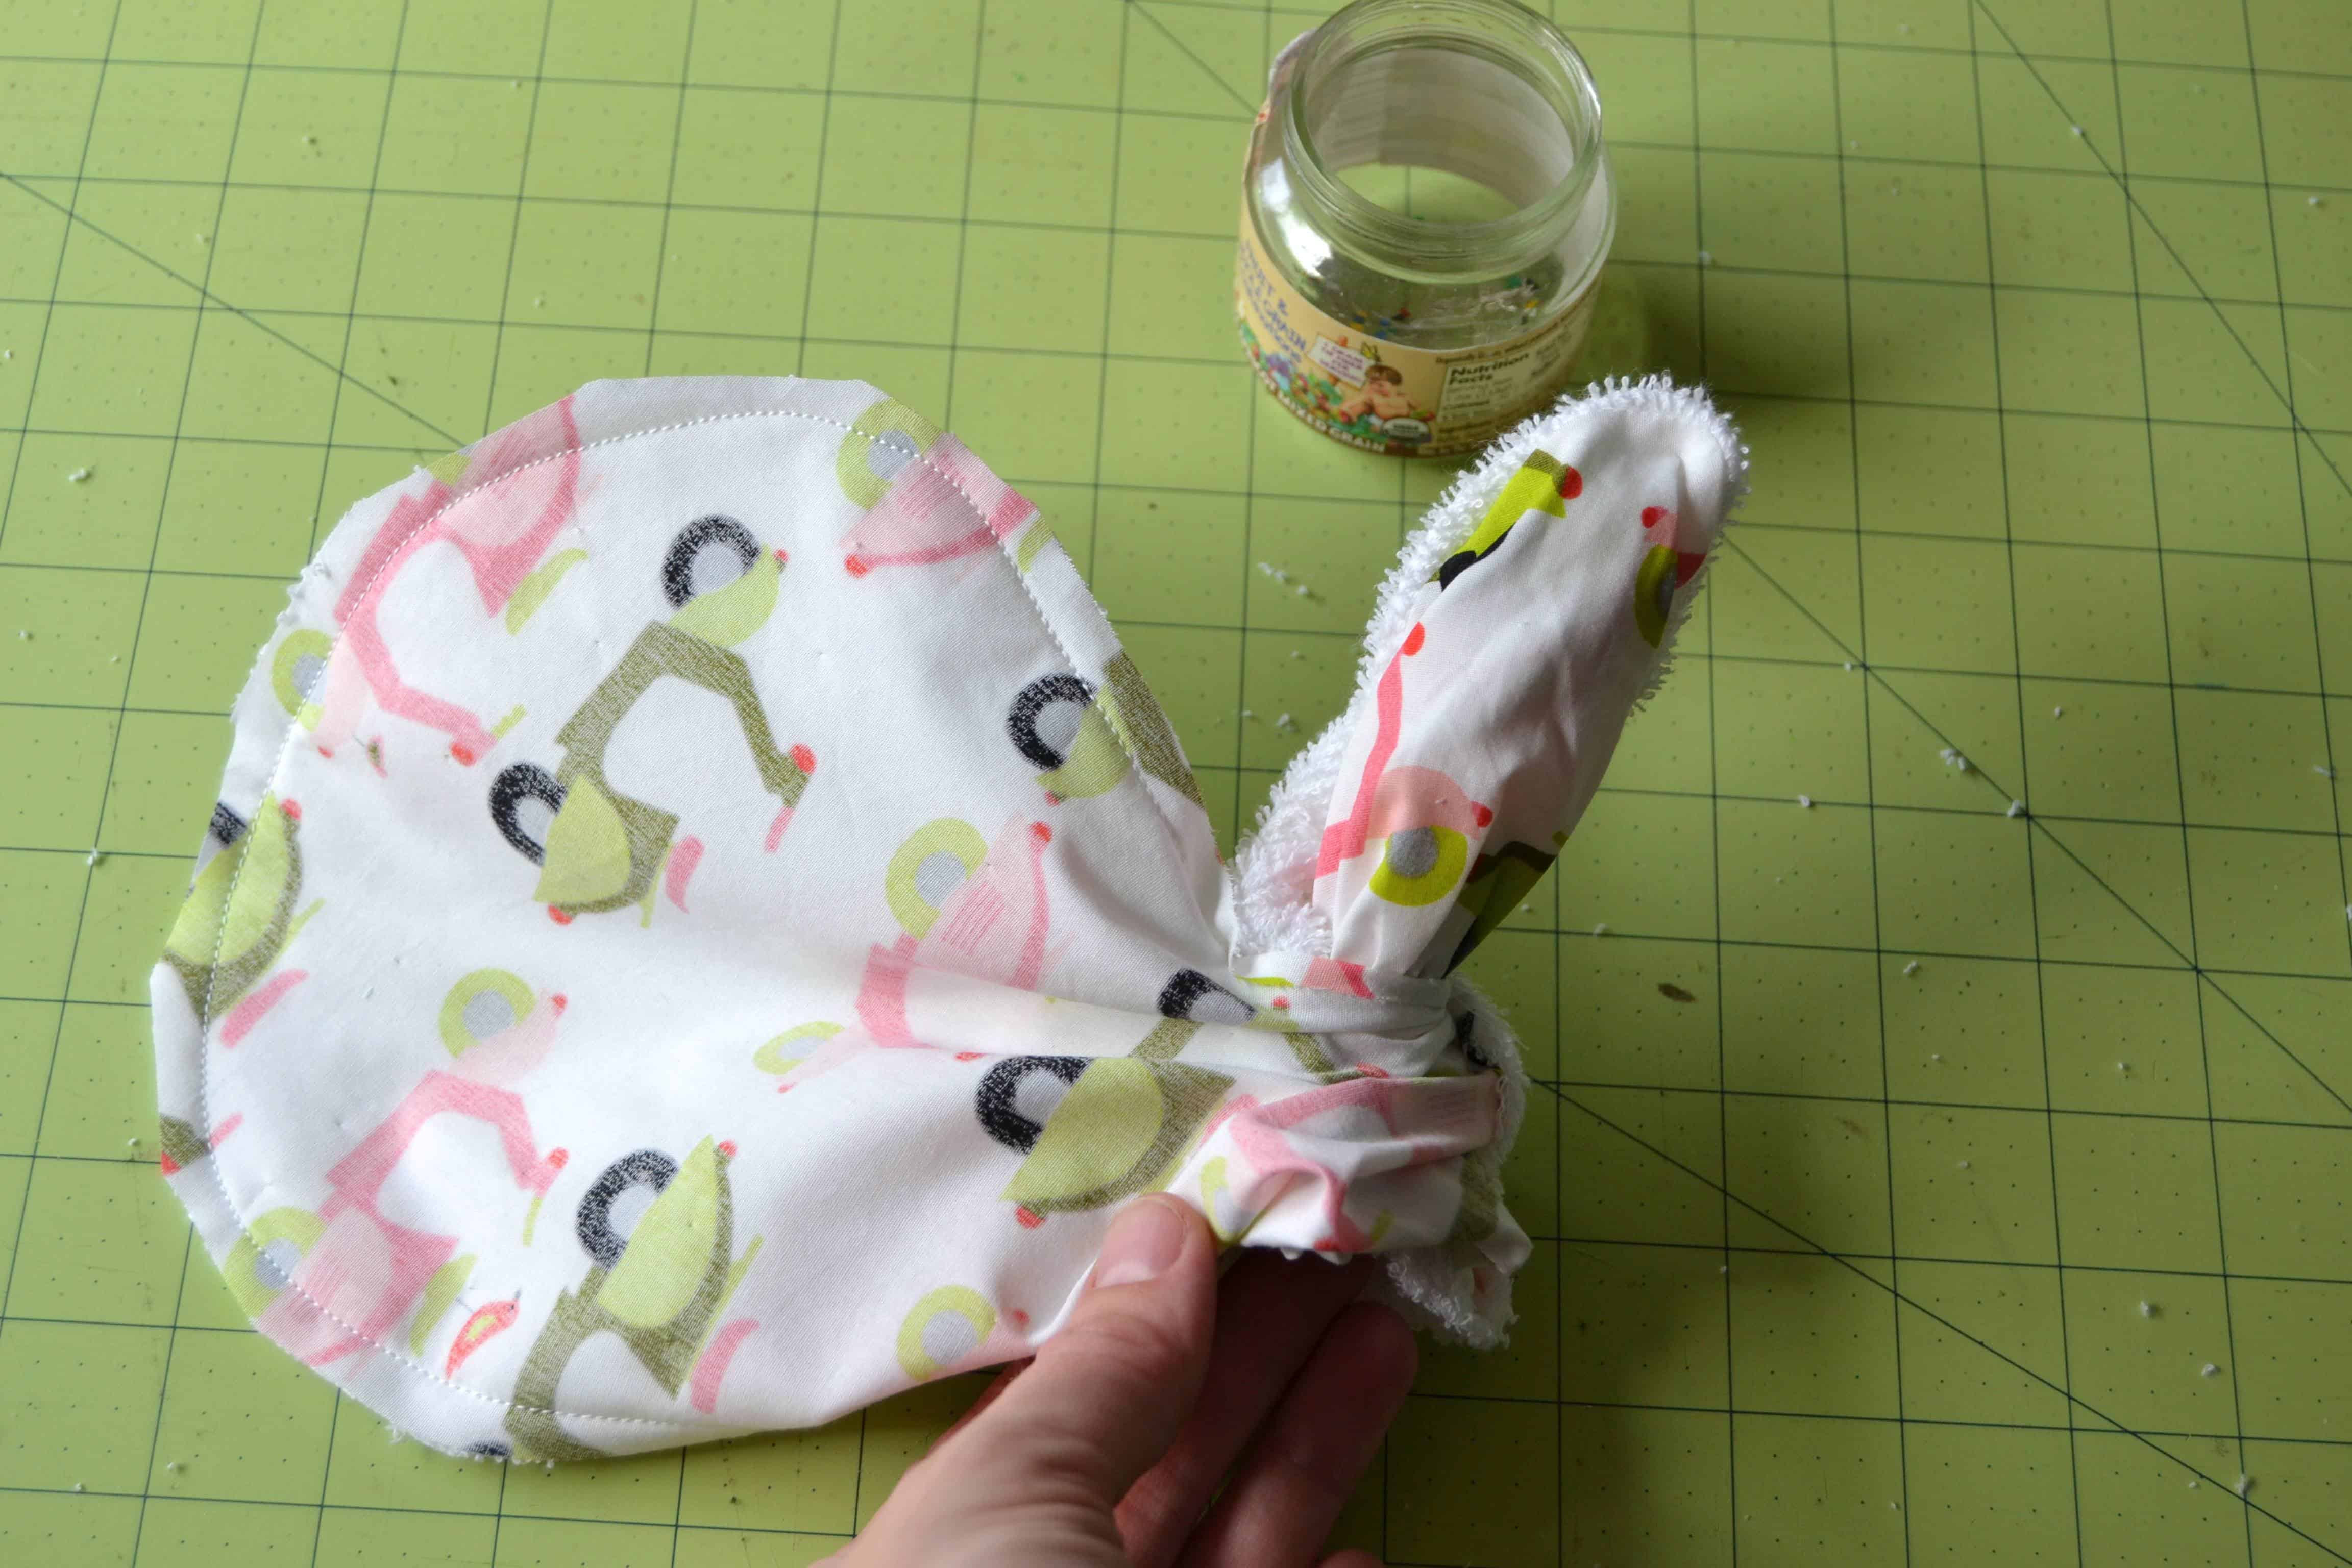 turning the burp cloth right side out